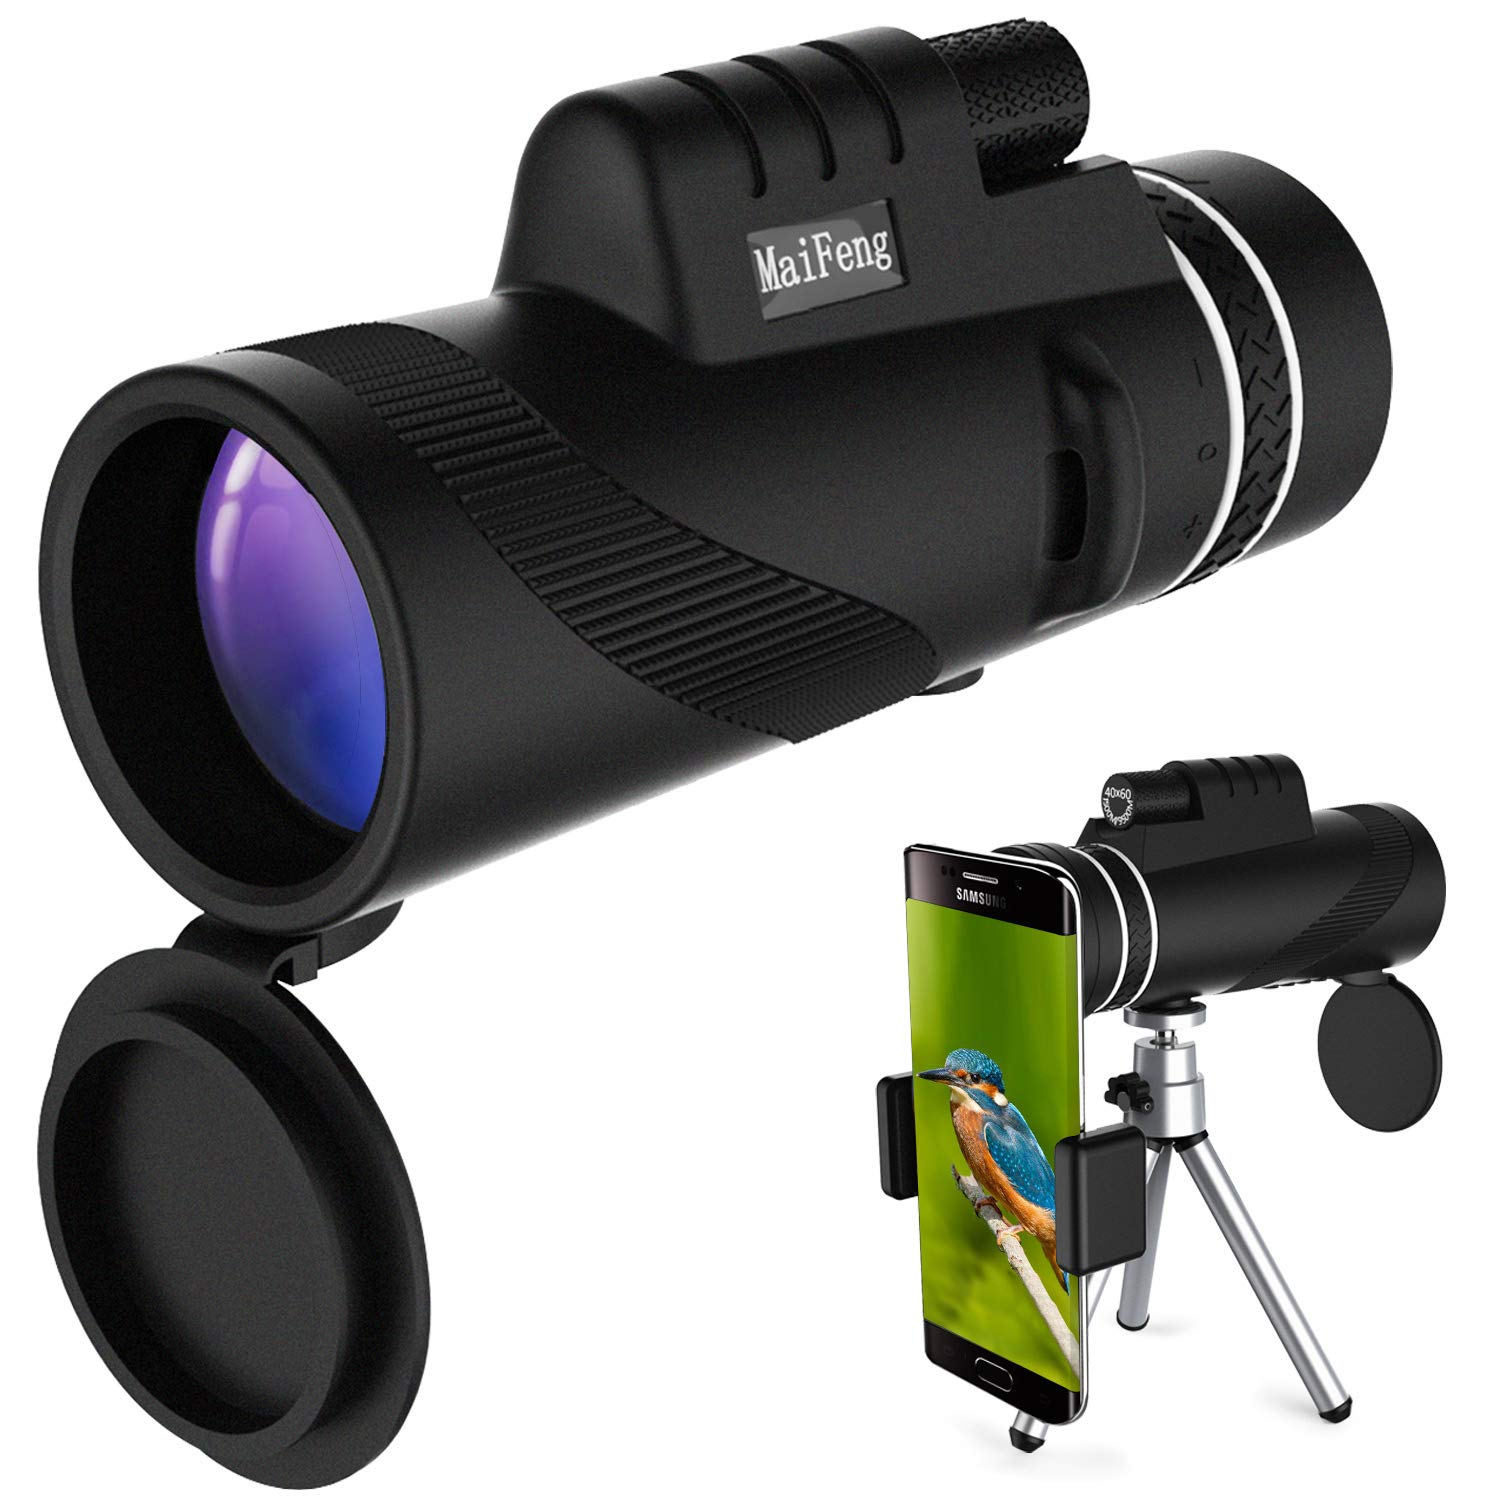 YOULERBU 40x60 Monocular Telescope, High Power BAK4 Prism FMC Lens Waterproof Scope with Quick Smartphone Holder and Tripod Camera for Bird Watching, Hunting, Camping, Hiking, Outdoor, Surveillance